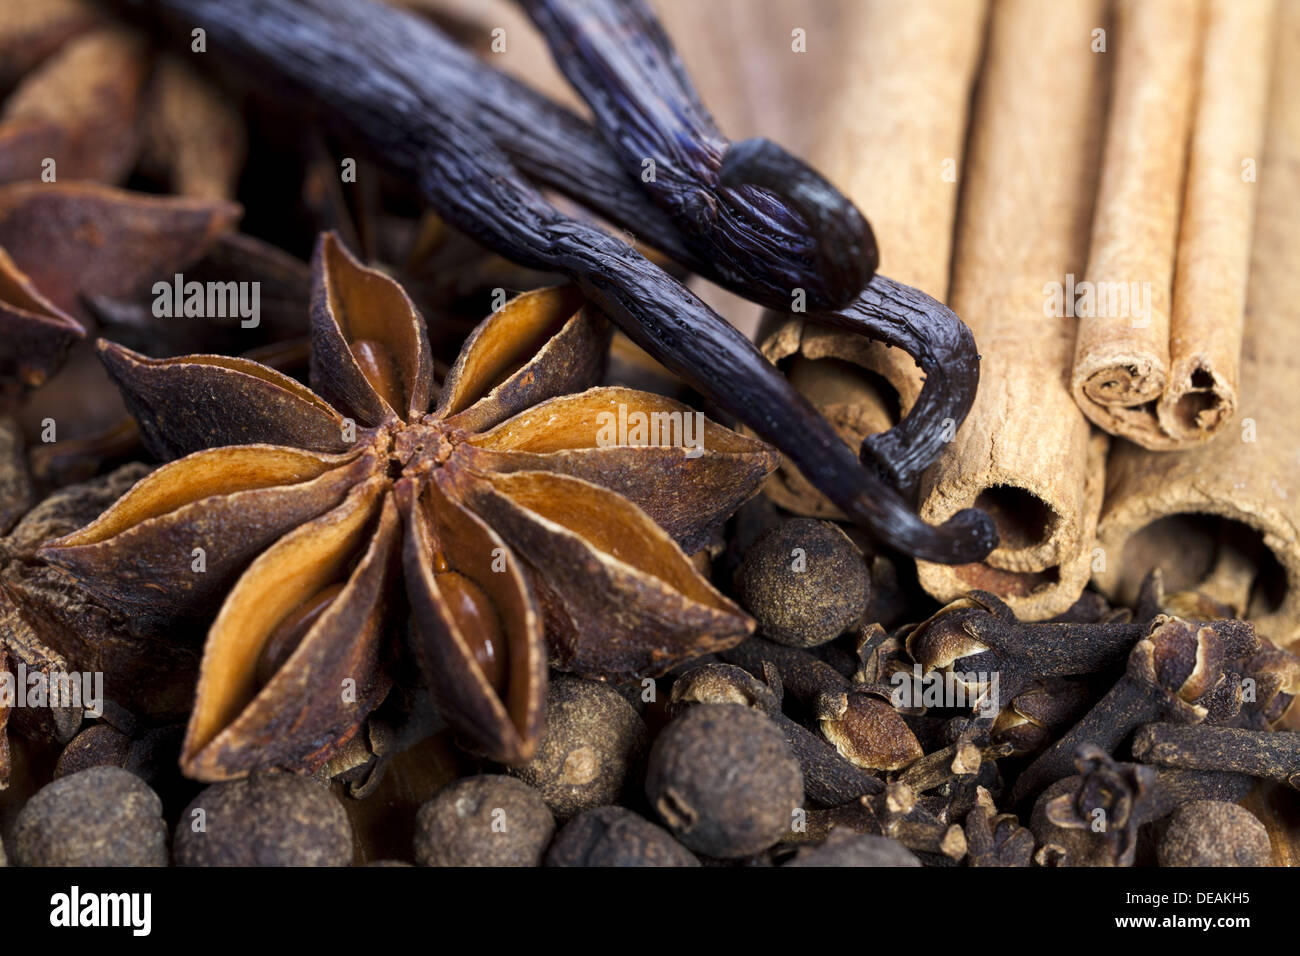 Assortment of Christmas spices on wooden Board as Close Up View - Stock Image